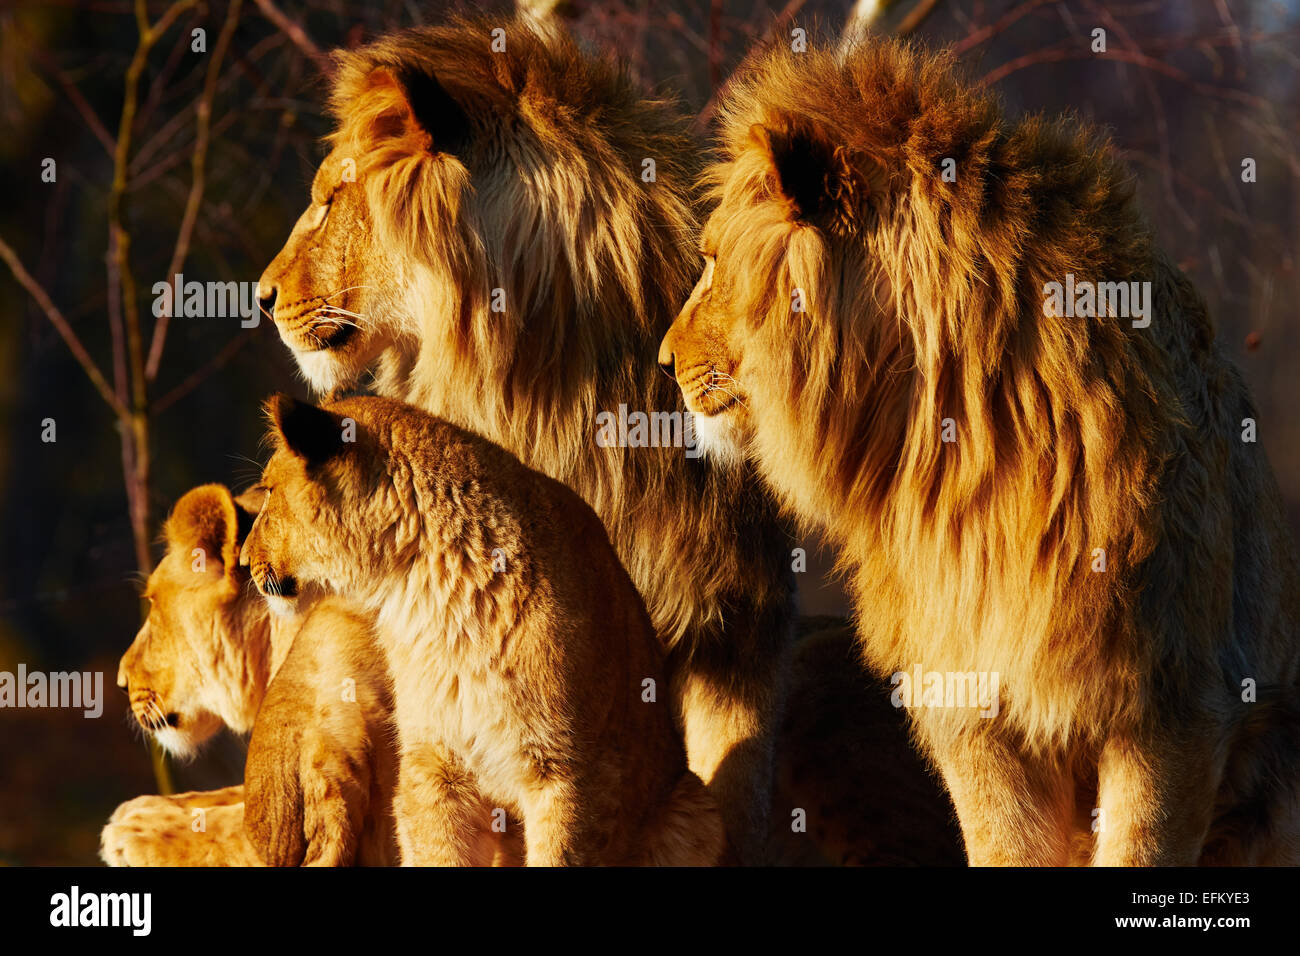 Four lions close together in a forest - Stock Image